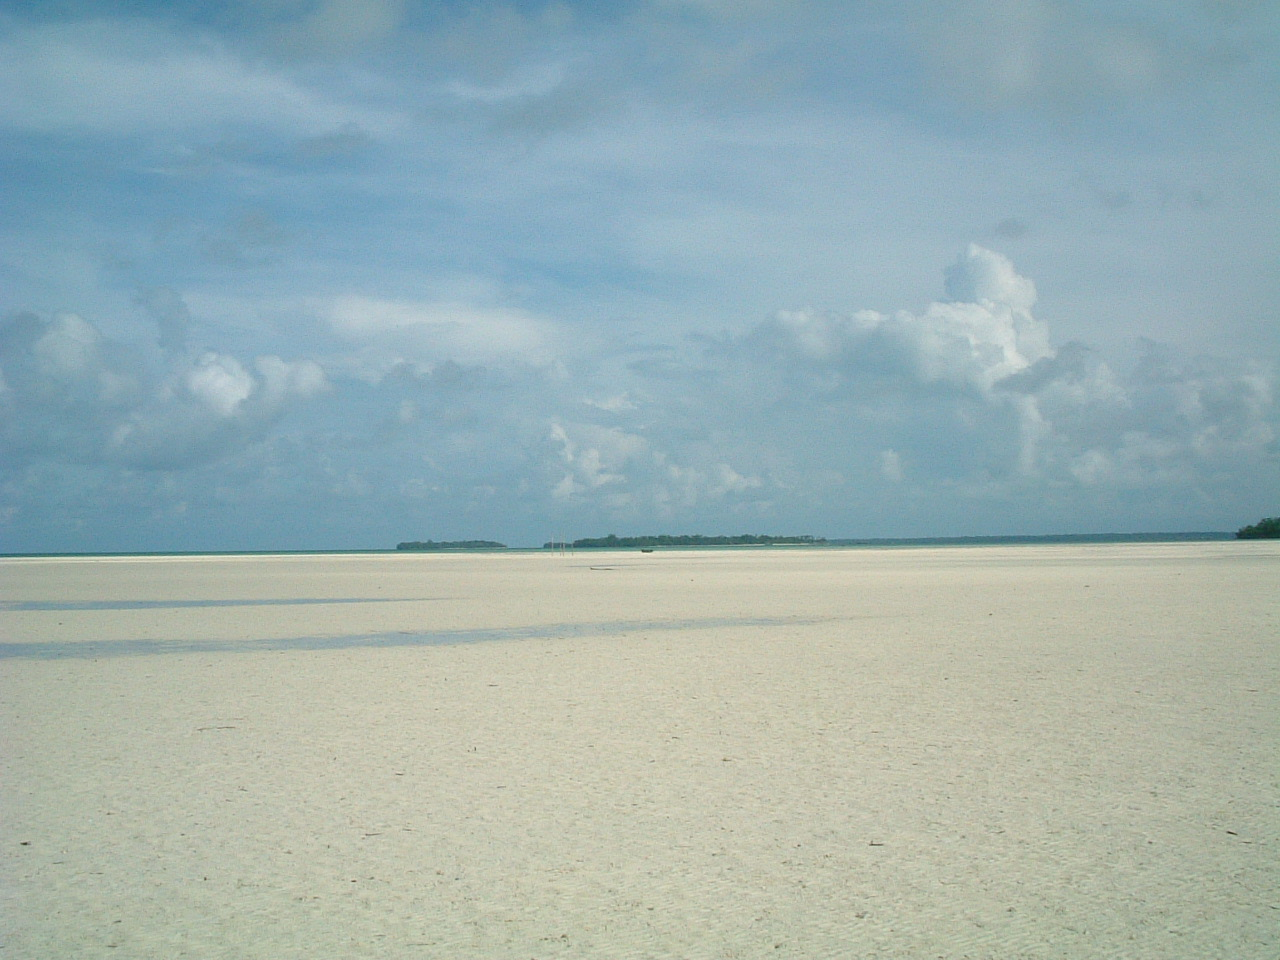 December 26, 2004. During the Aceh tsunami, the sea just disappeared in parts of the Kei islands in Eastern Indonesia.